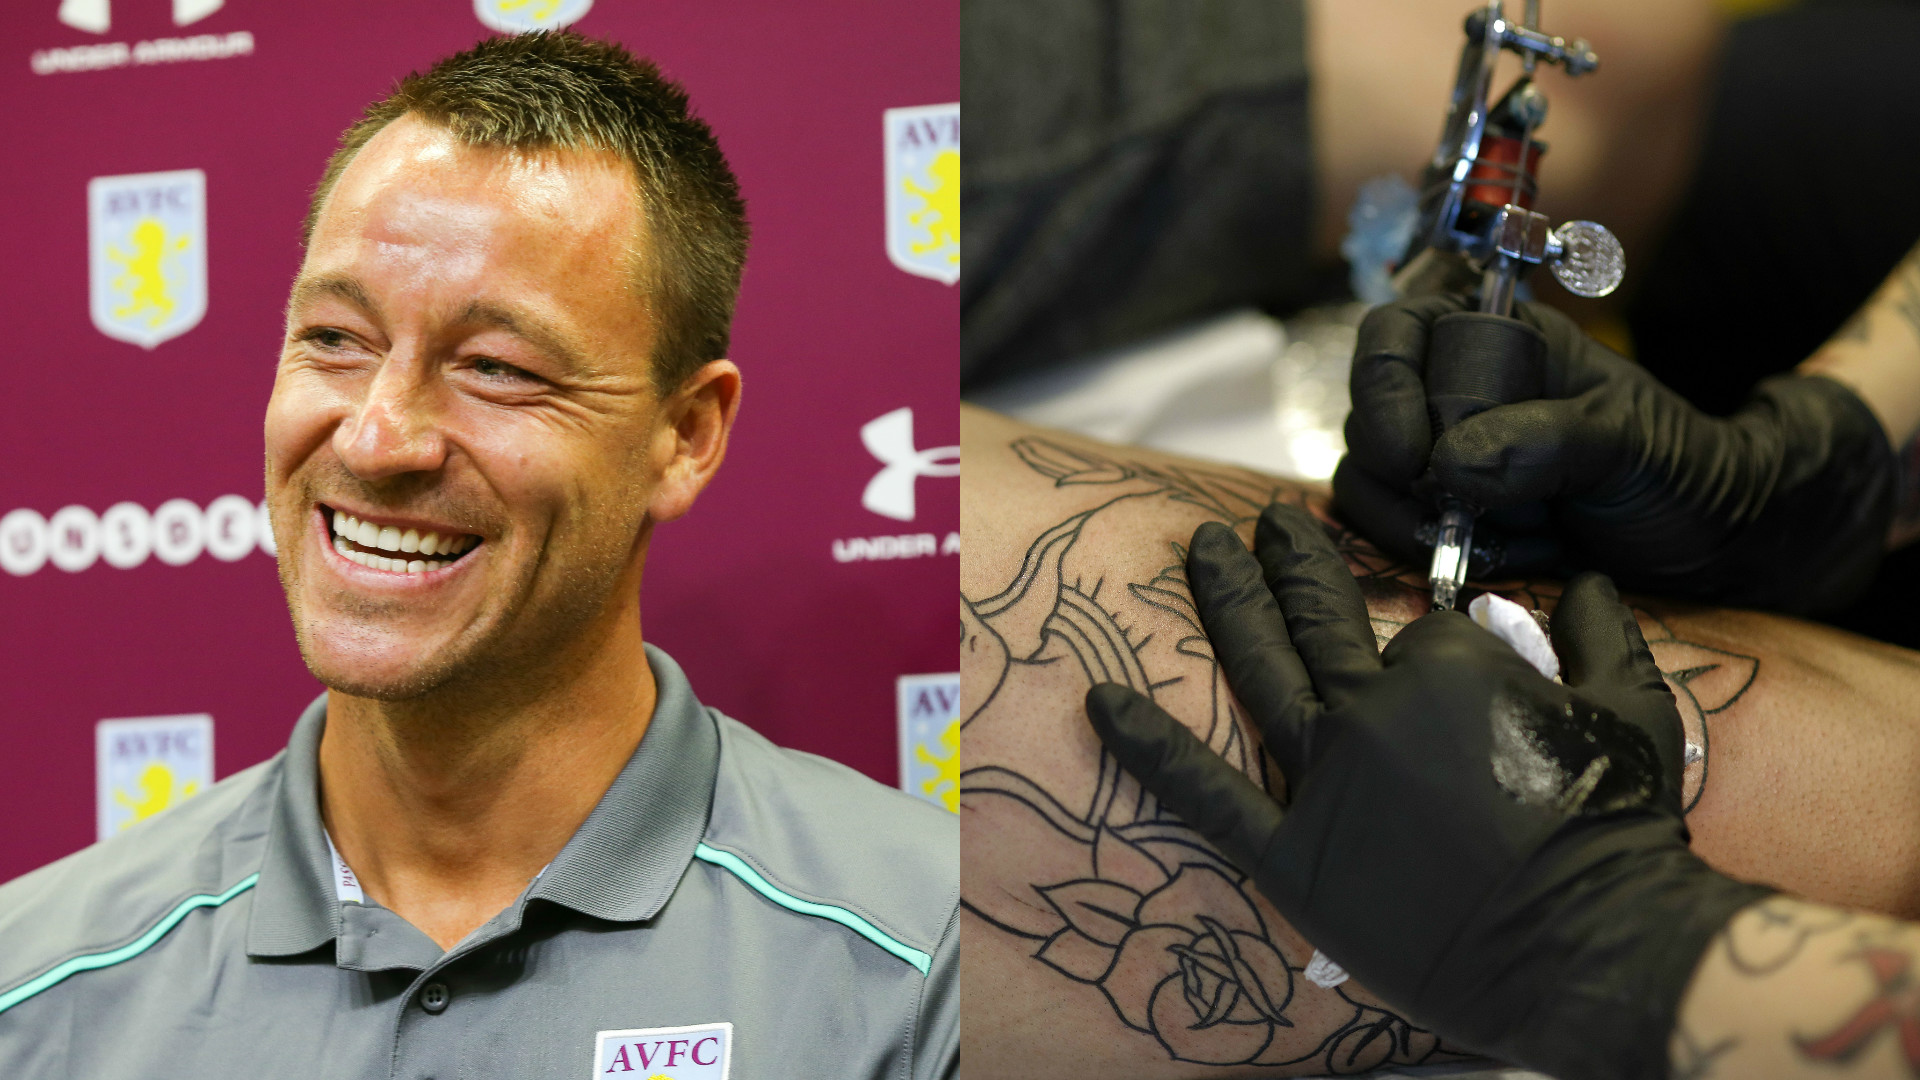 John Terry tattoos.